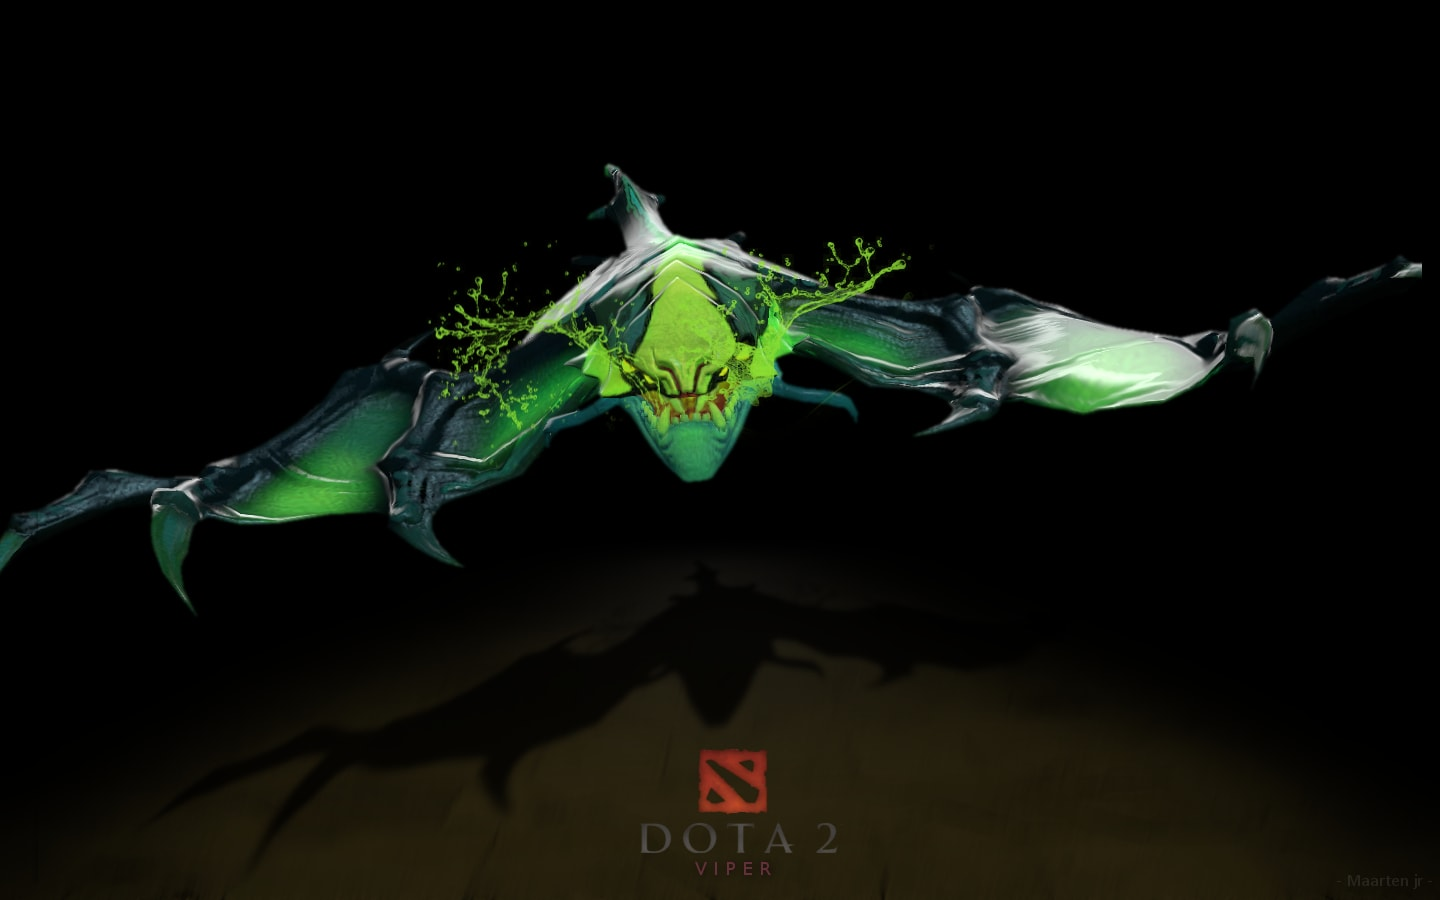 Dota2 : Viper Wallpapers